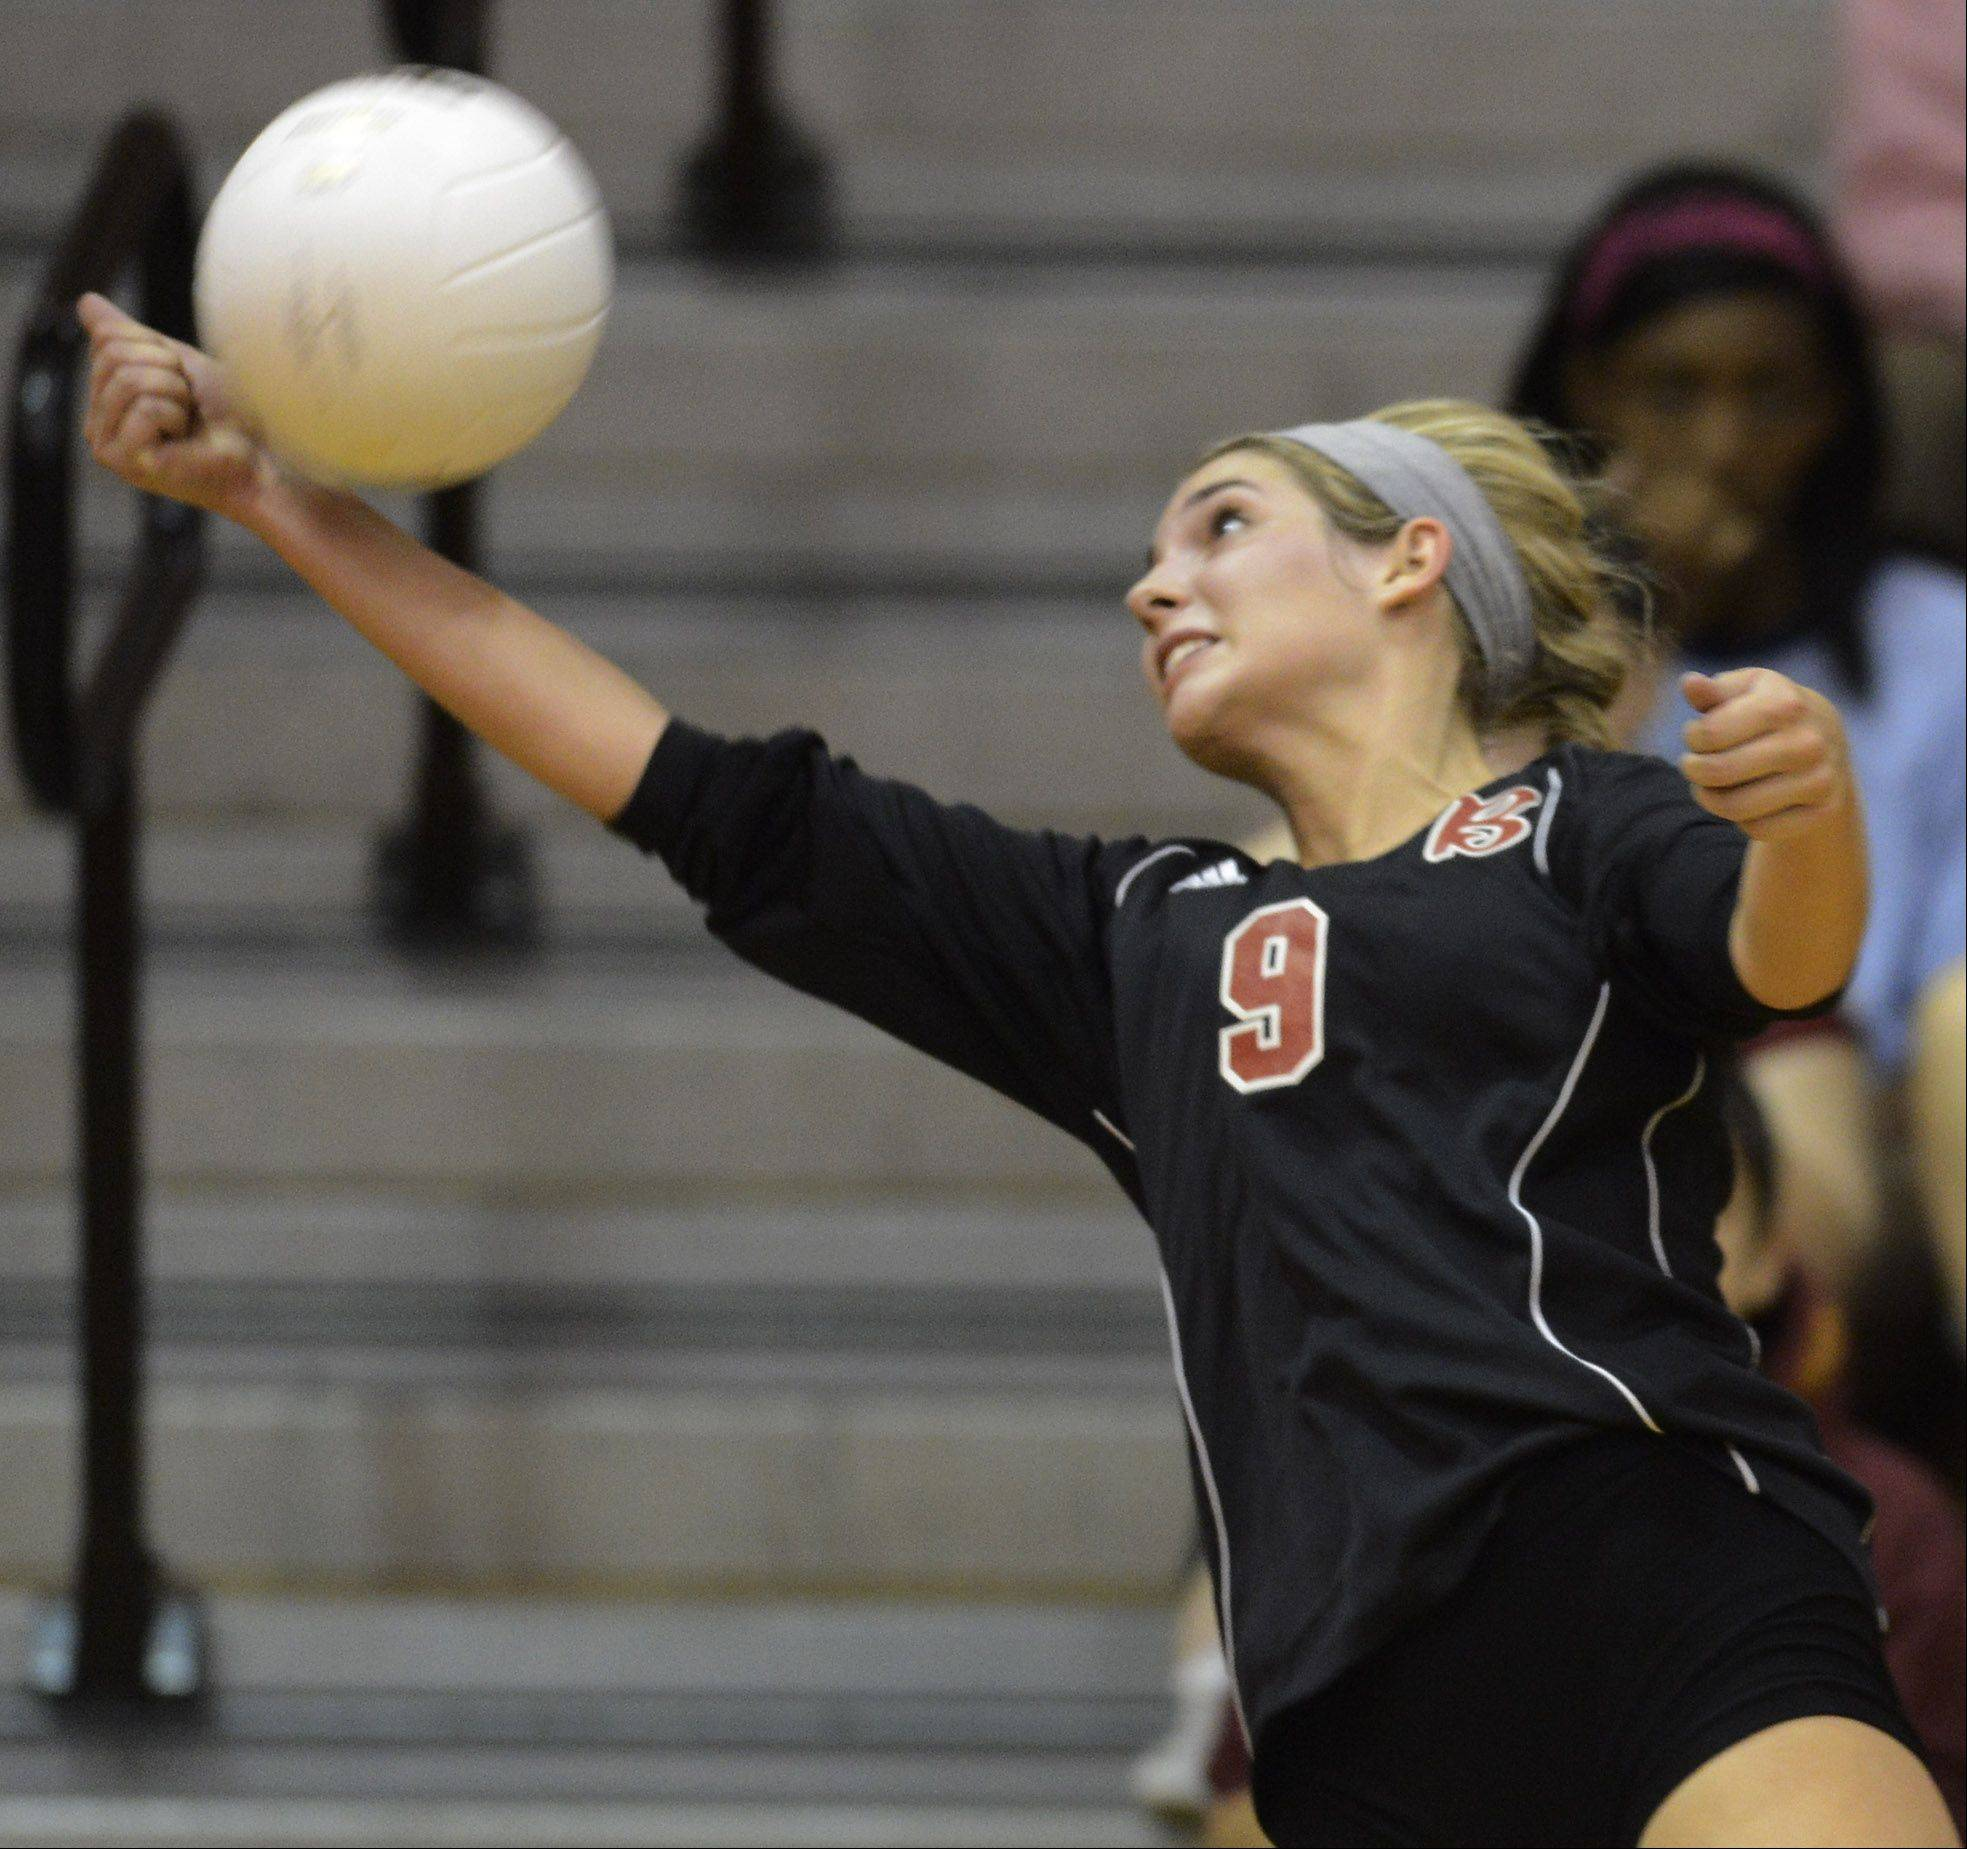 Barrington's Emily Watkins reaches to keep the ball in play against Schaumburg Tuesday.